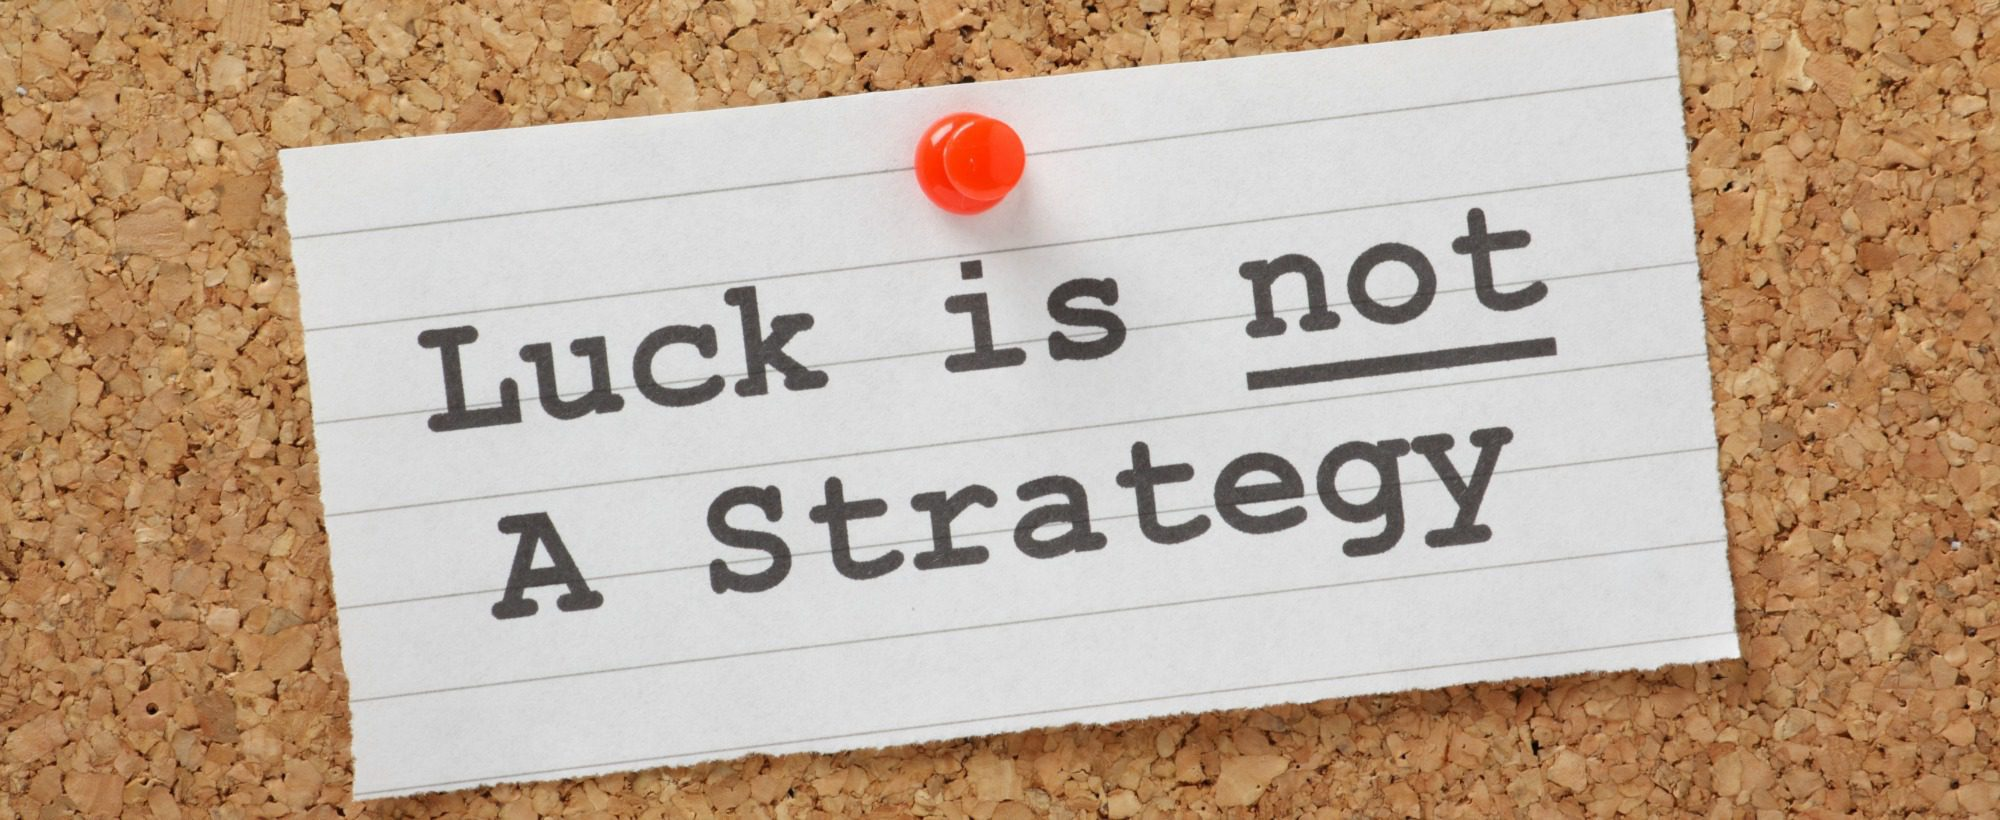 Luck is not a strategy - especially when it comes to getting results from your email marketing